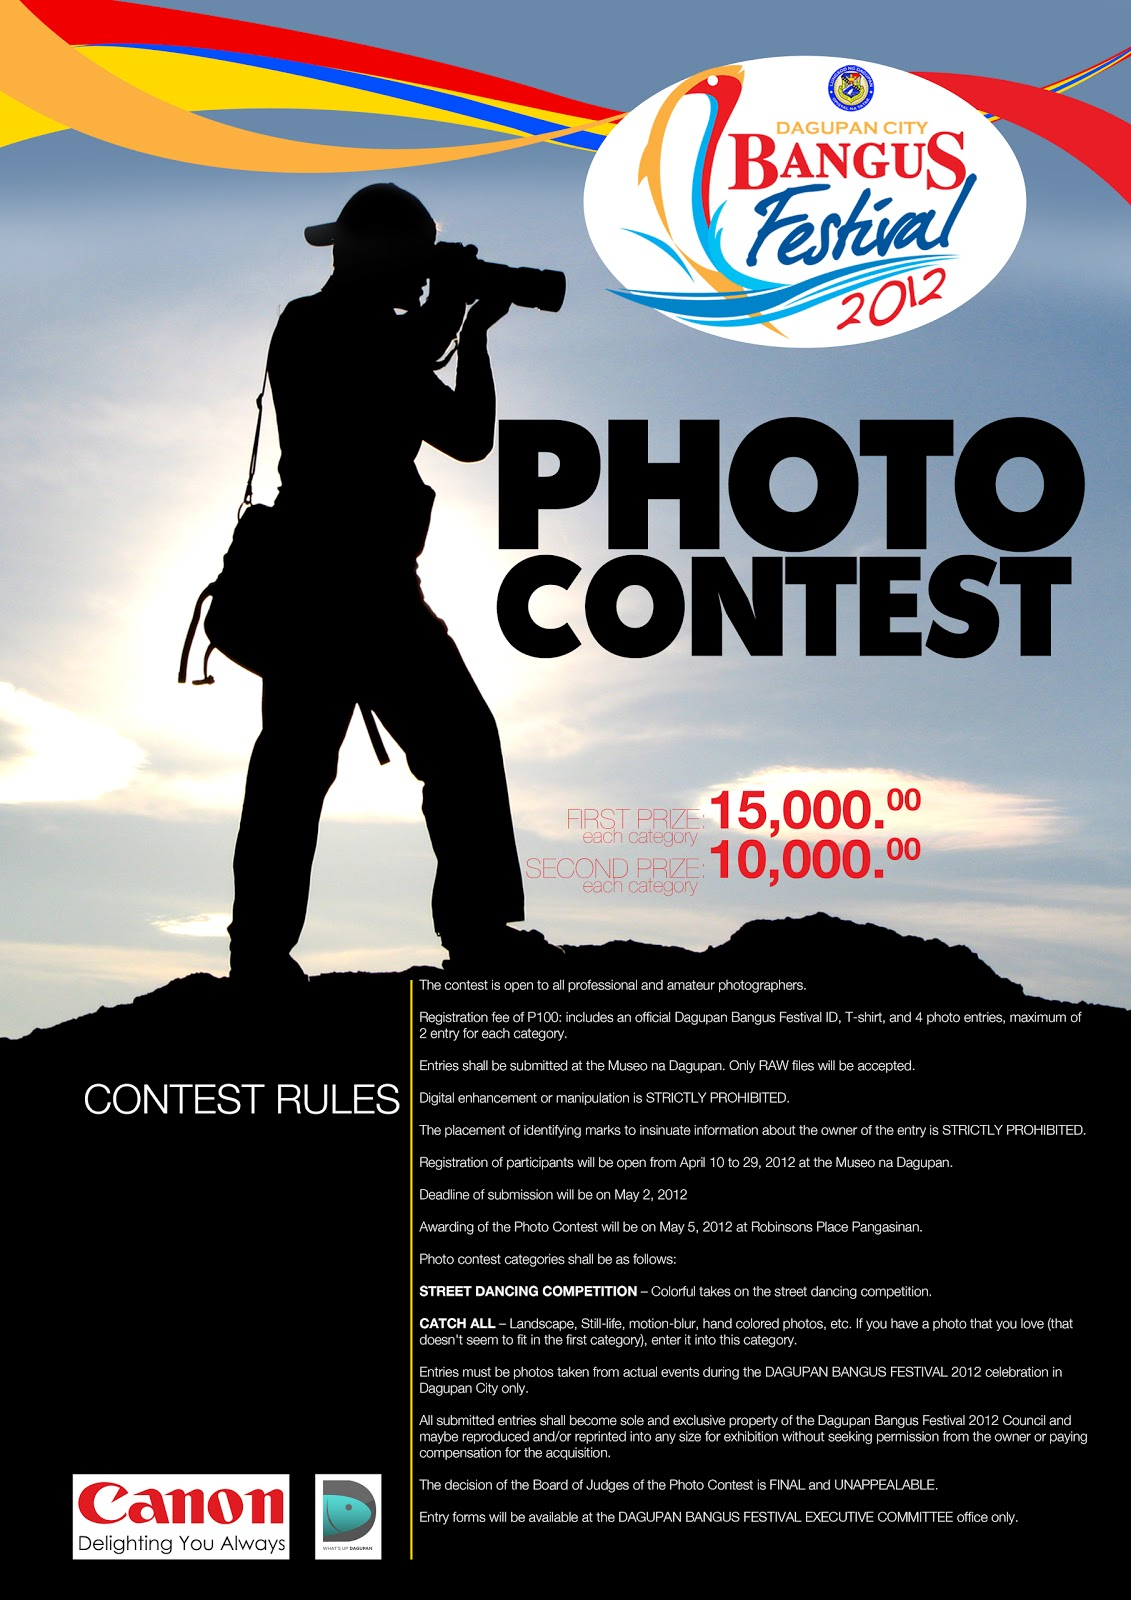 The Dagupan Bangus Festival 2012 Photo Contest Mechanics:: whatsupdagupan.blogspot.com/2012/04/bangus-festival-2012-photo...